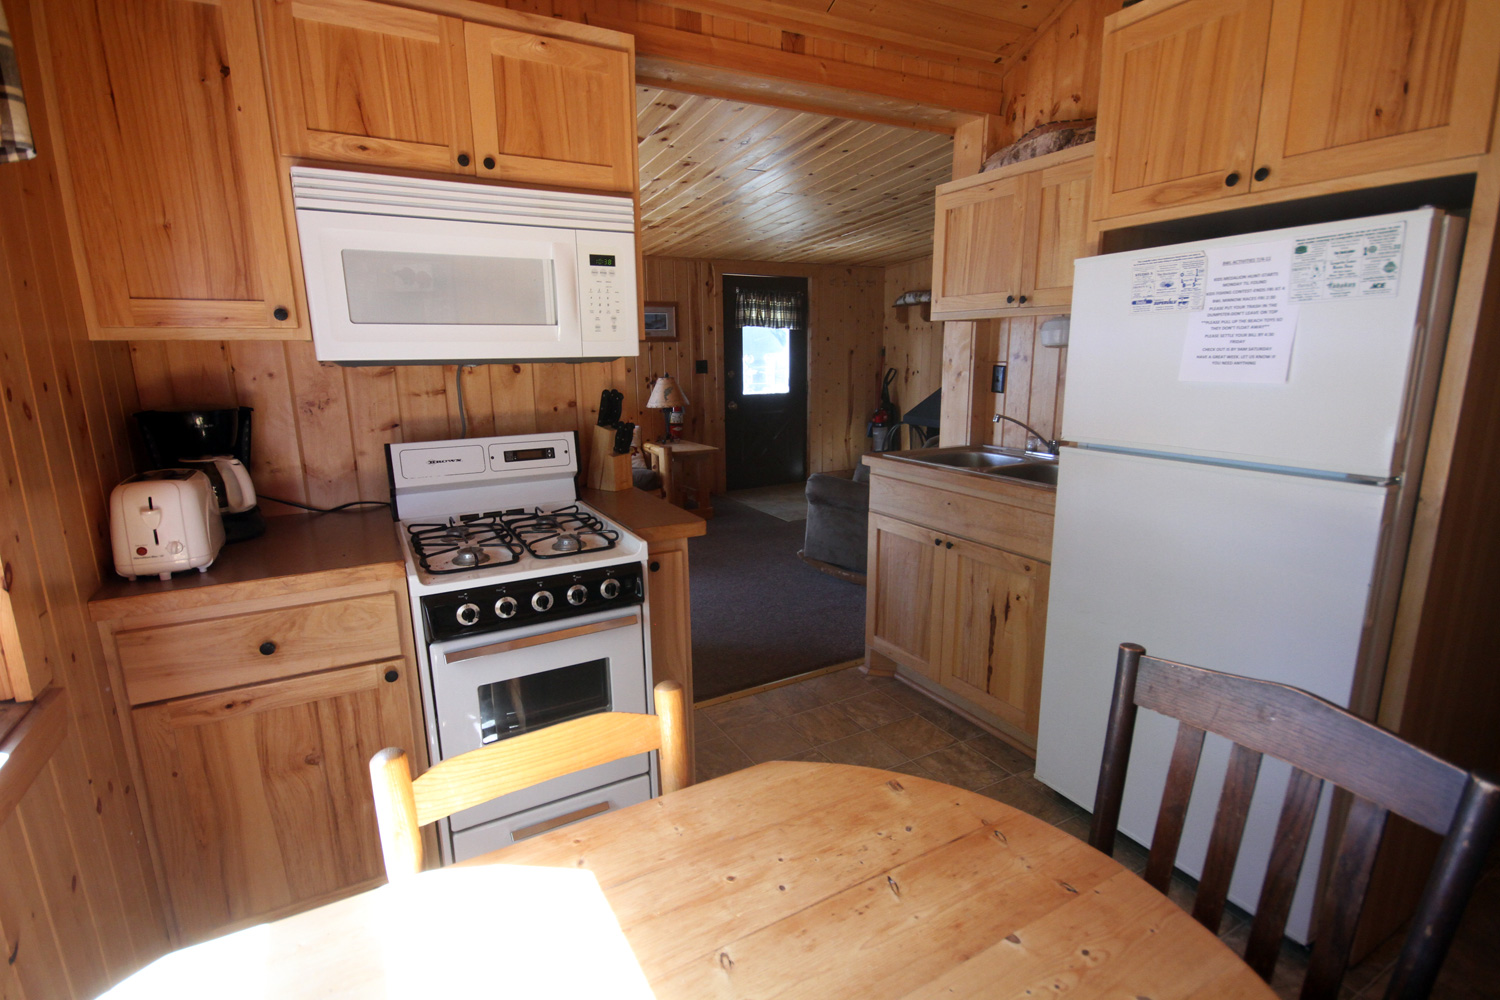 Centrally located Kitchen with a great view